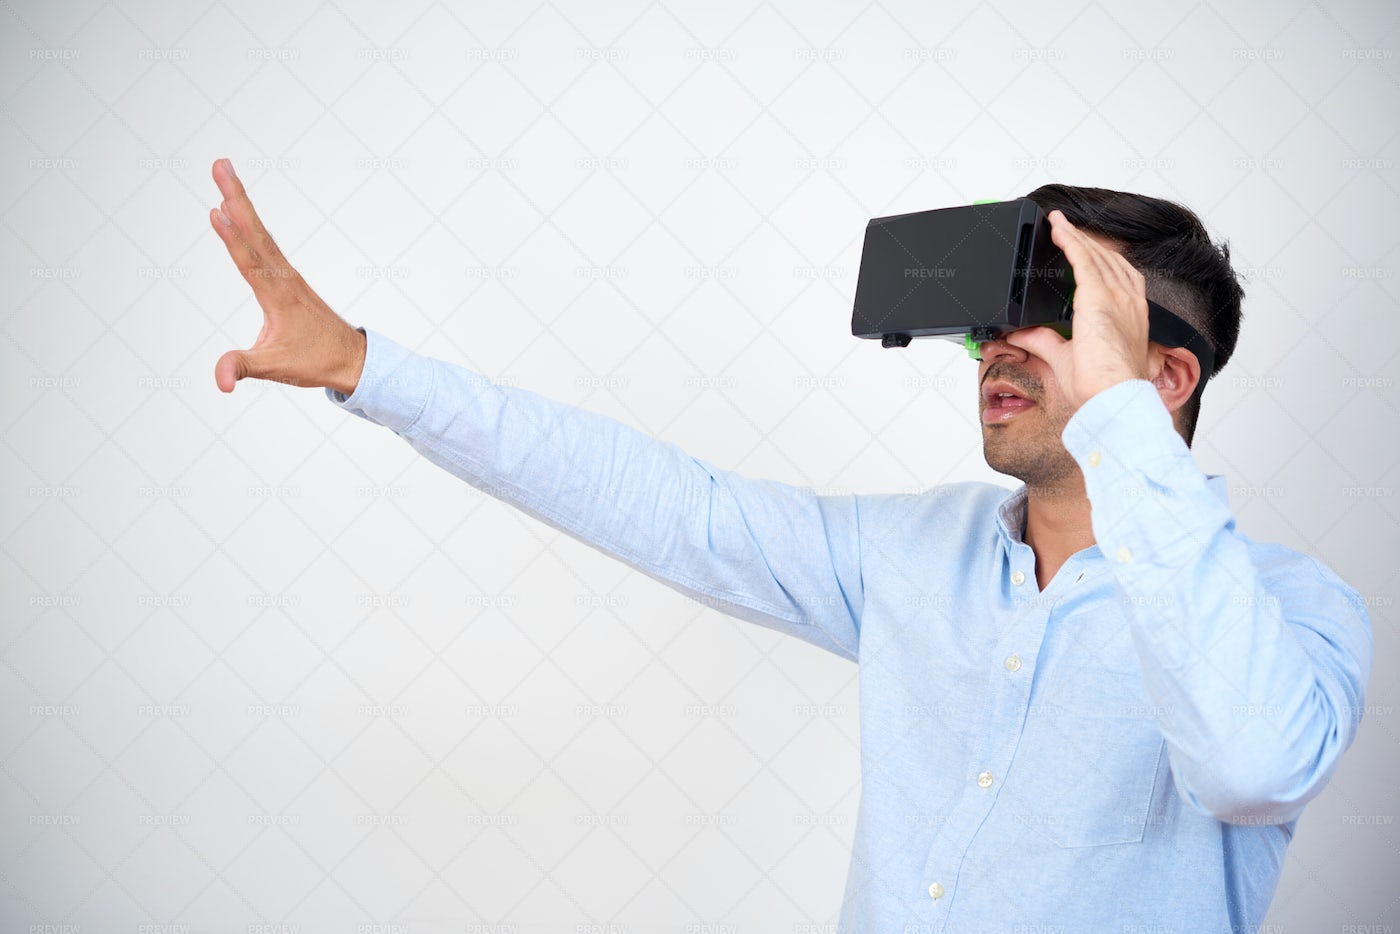 Businessman Working In VR Headset: Stock Photos